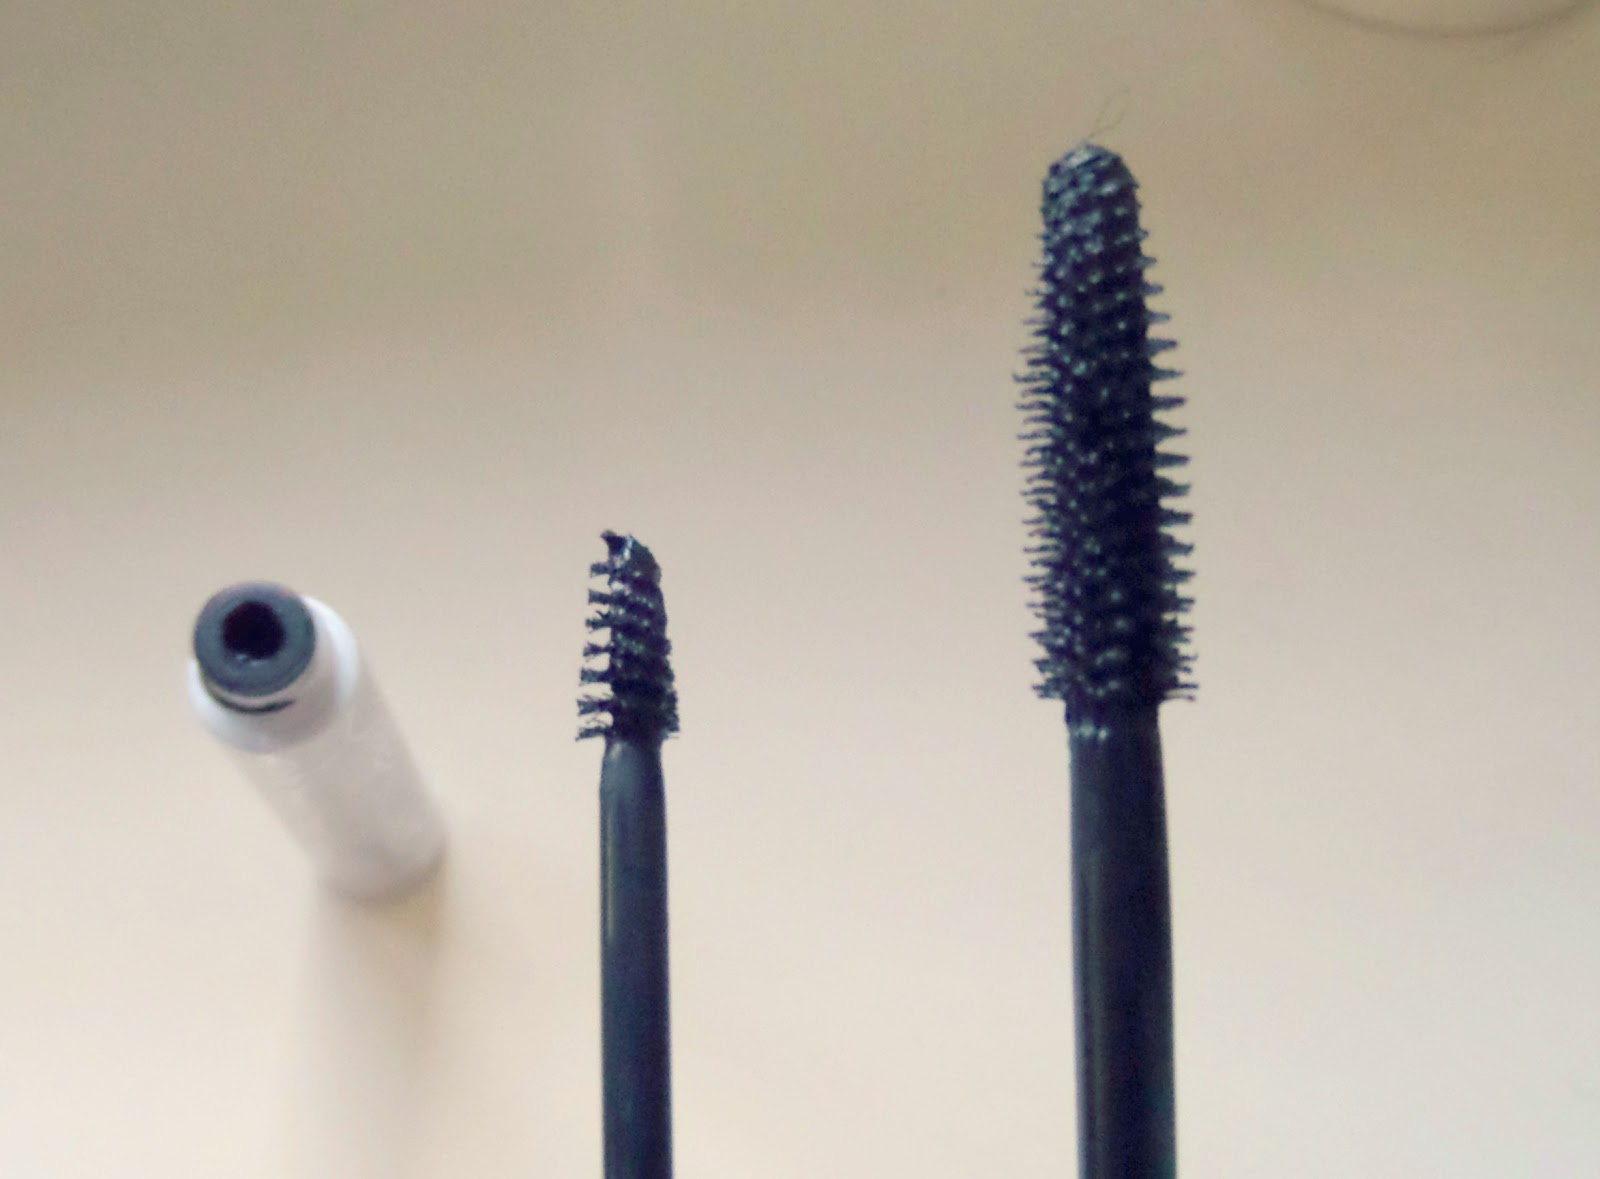 Clinique Bottom Lash Mascara vs Max Factor